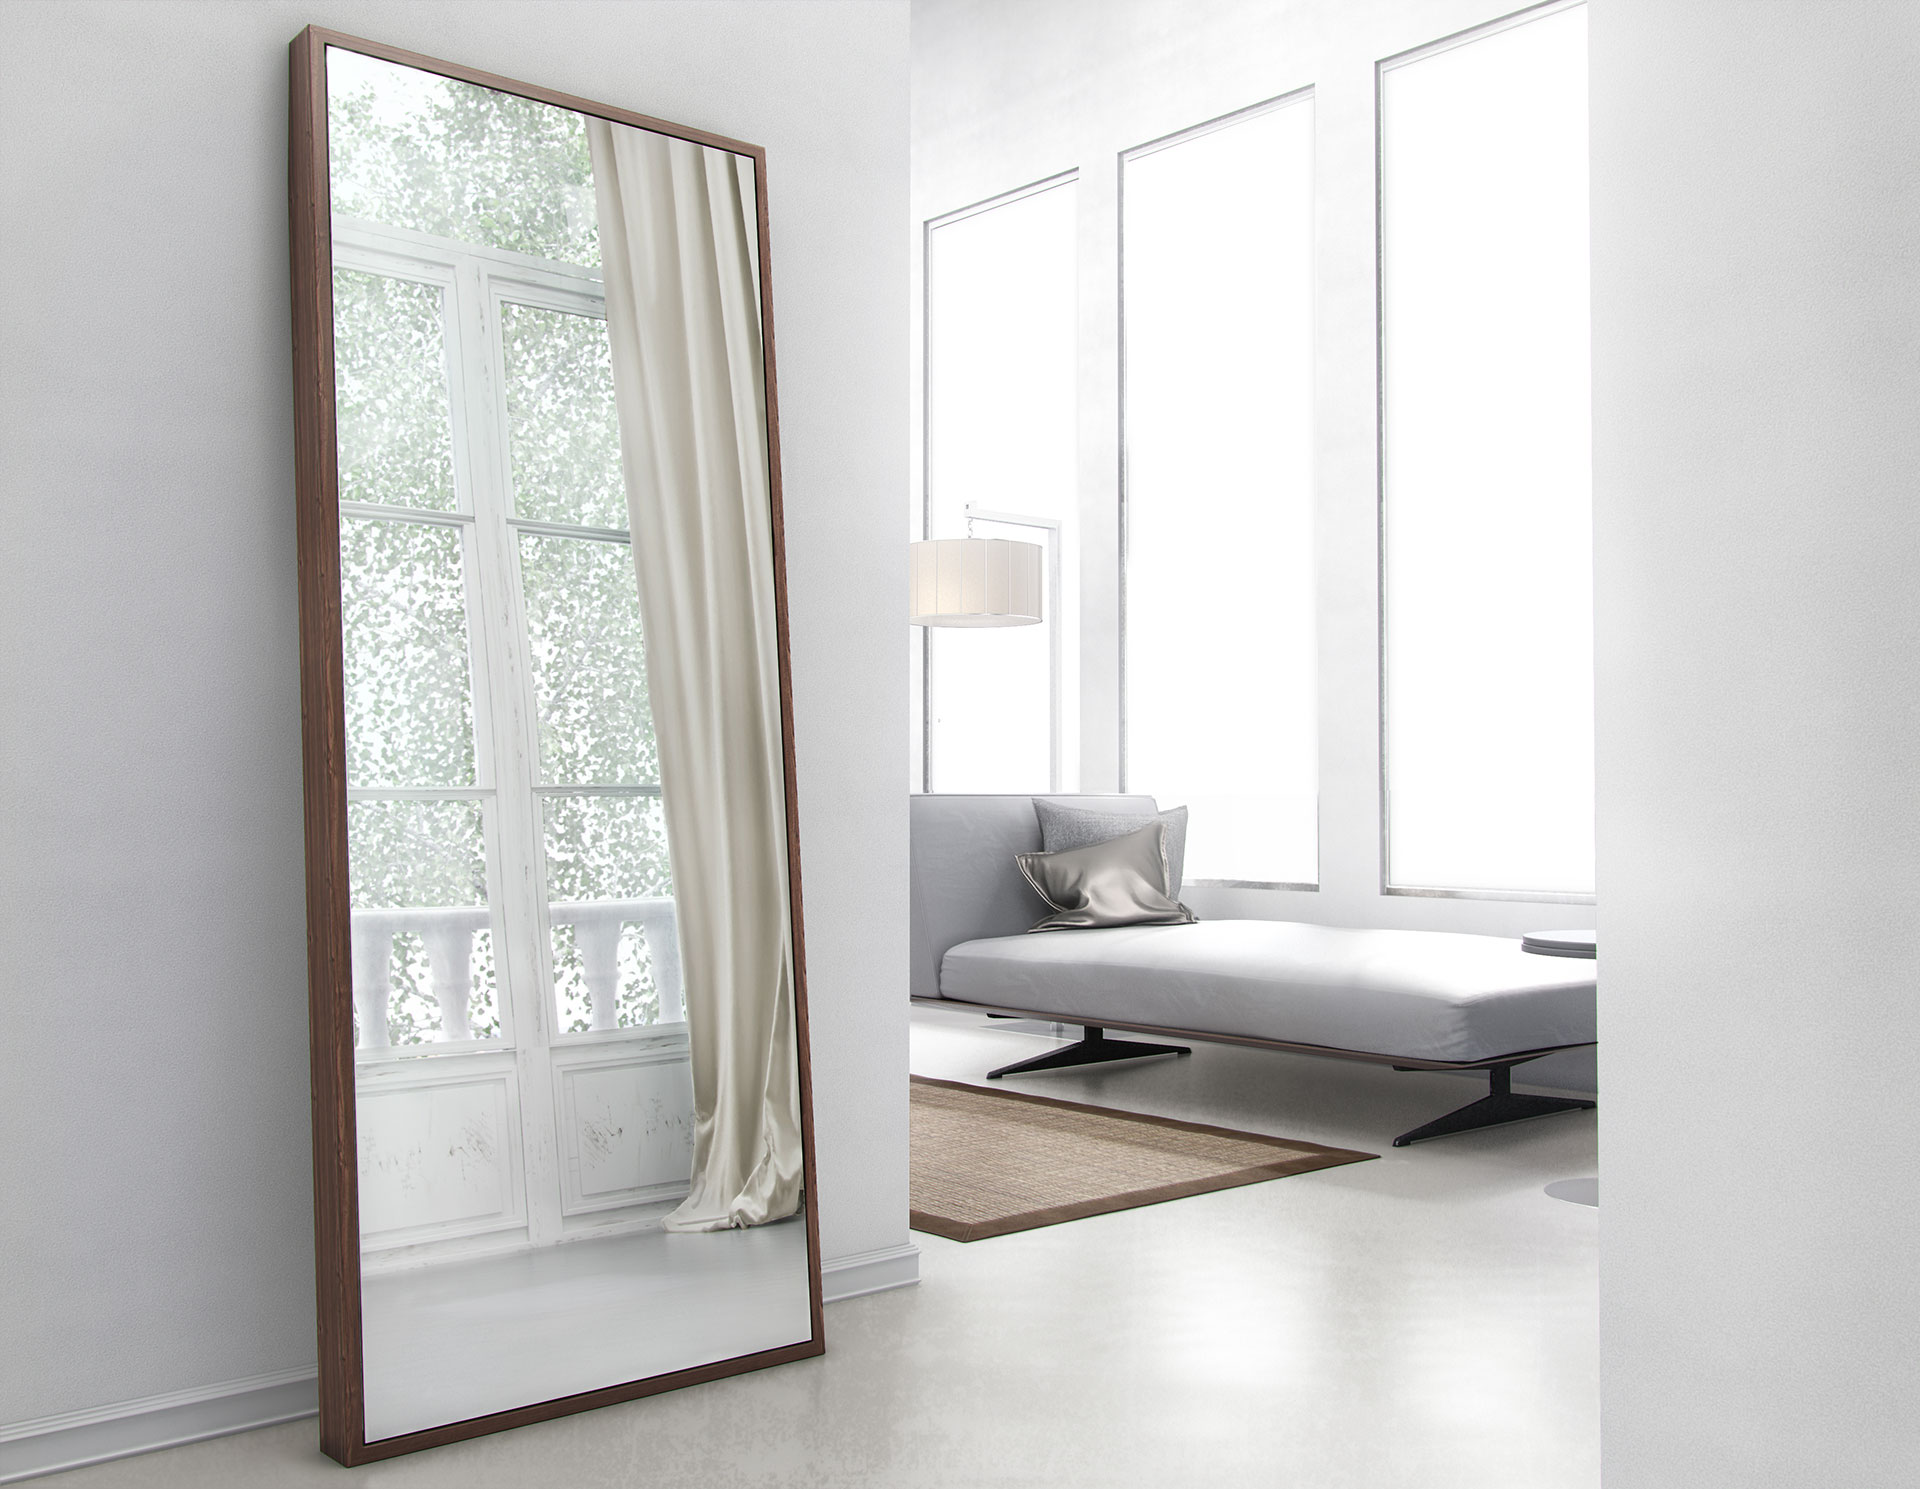 Modloft greene mirror md120 official store - Decorative wall mirrors for bedroom ...